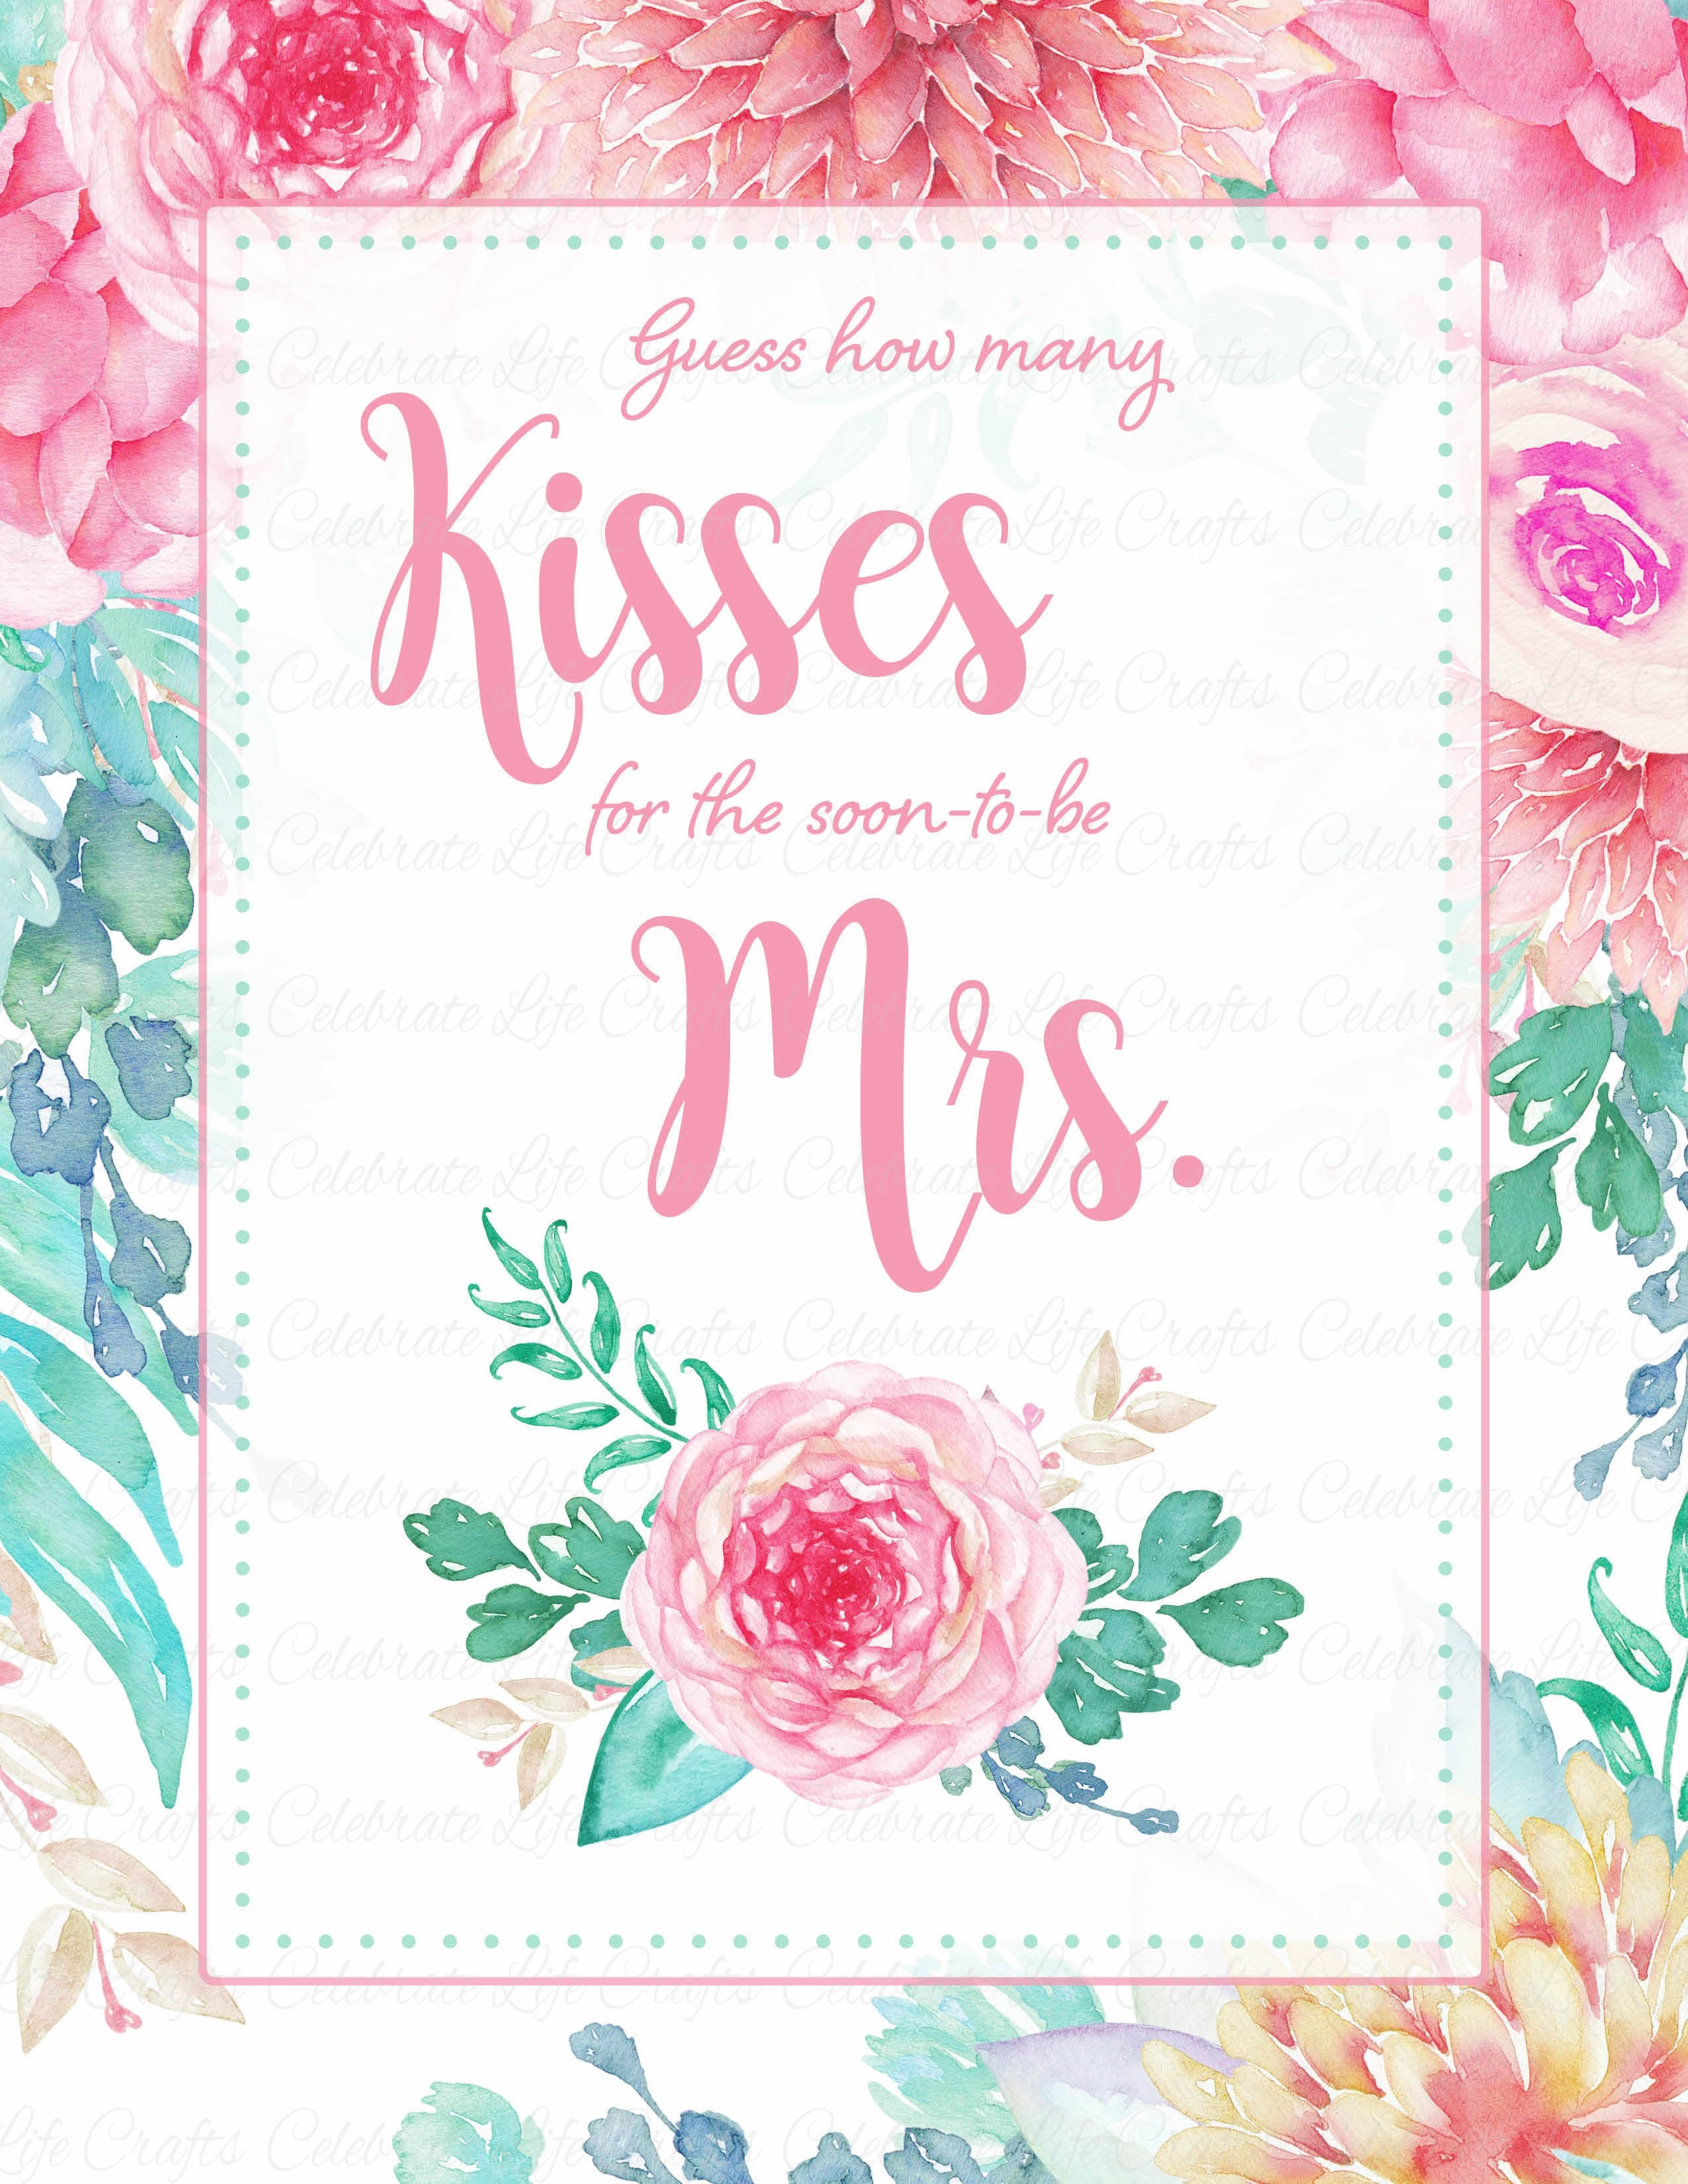 photo about Guess Who Cards Printable named How Numerous Kisses Bridal Shower Recreation Indication - Crimson Floral